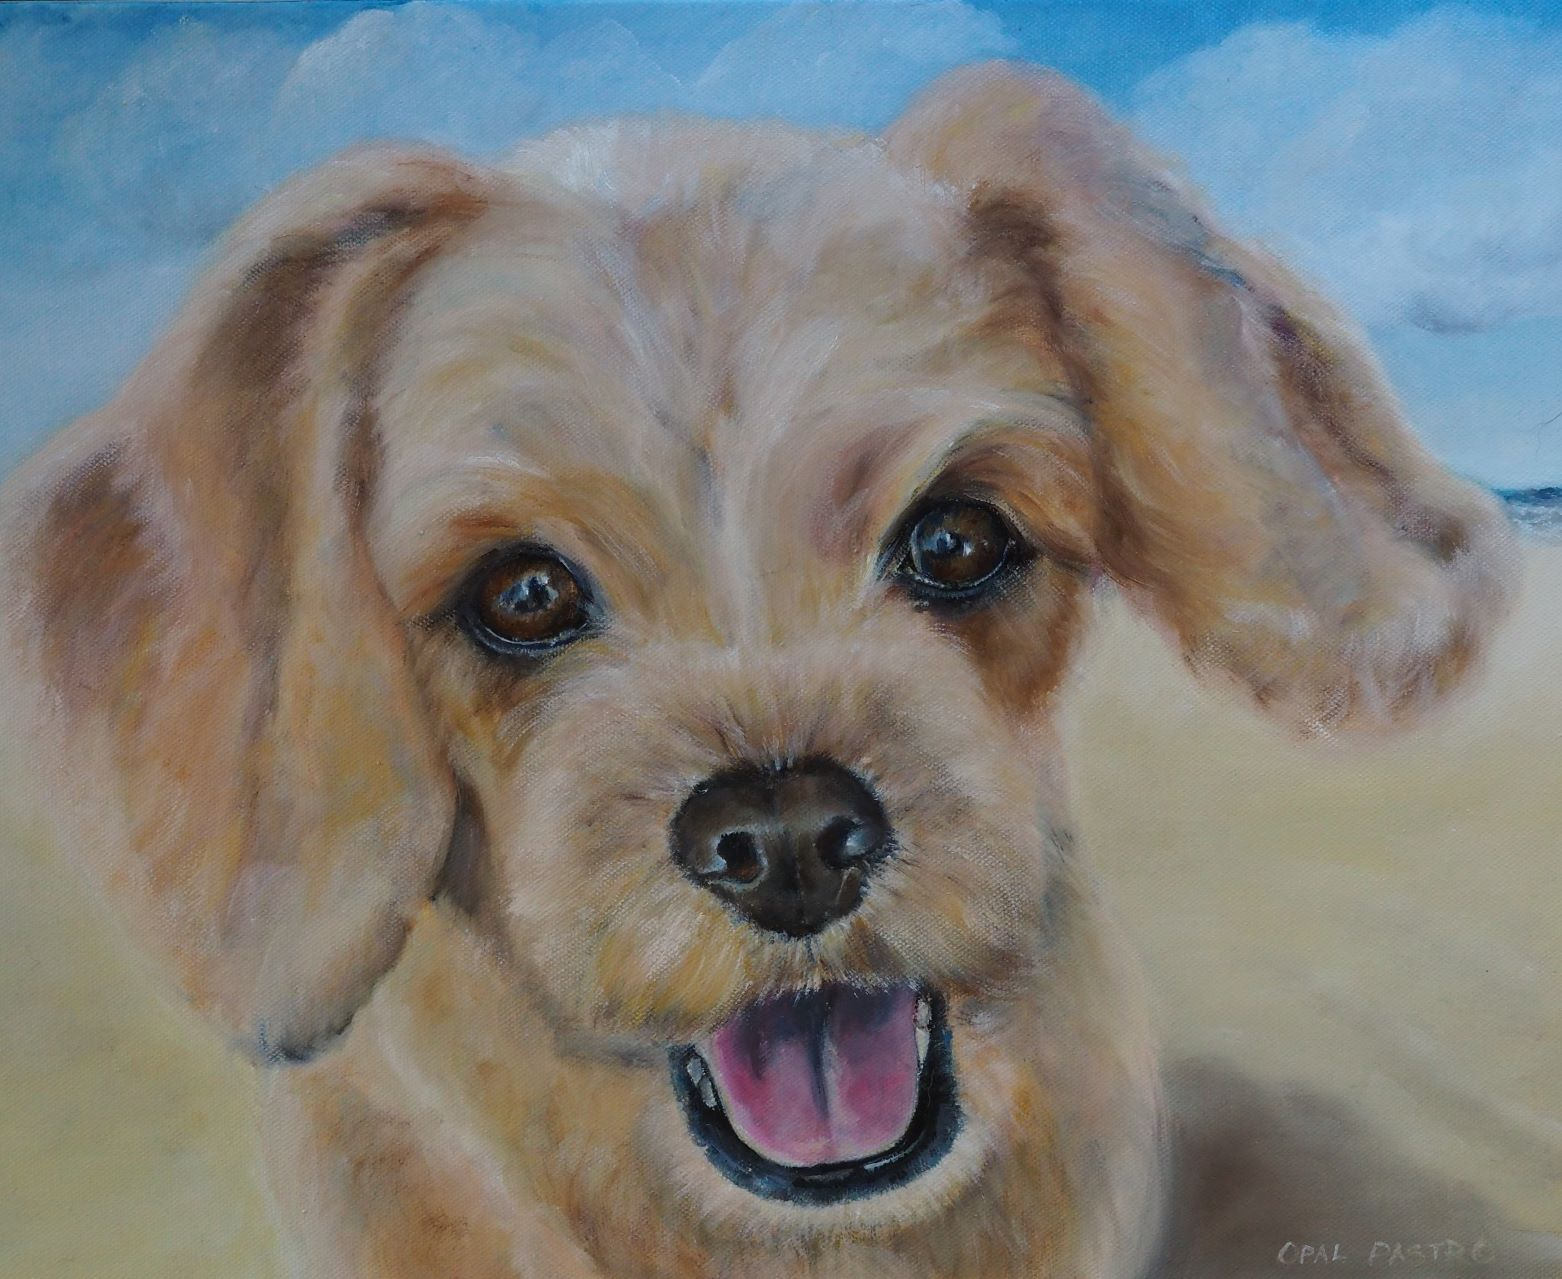 - Charlie was so dearly missed after he passed away.His memorial portrait is helping to heal his mum's sad heart.